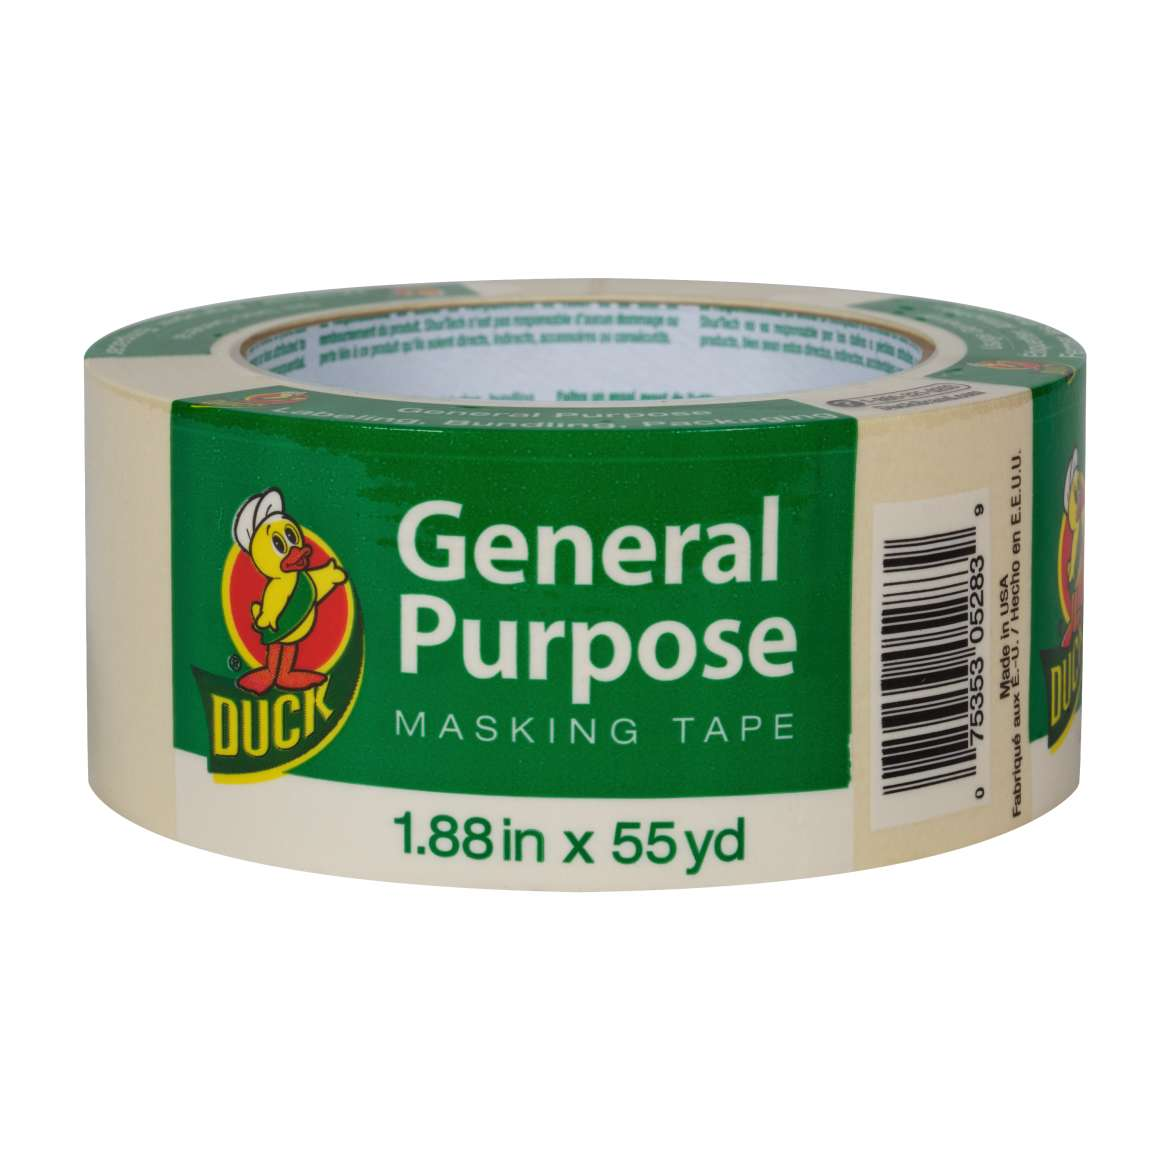 Duck® Brand General Purpose Masking Tape - Beige, 1.88 in. x 55 yd. Image